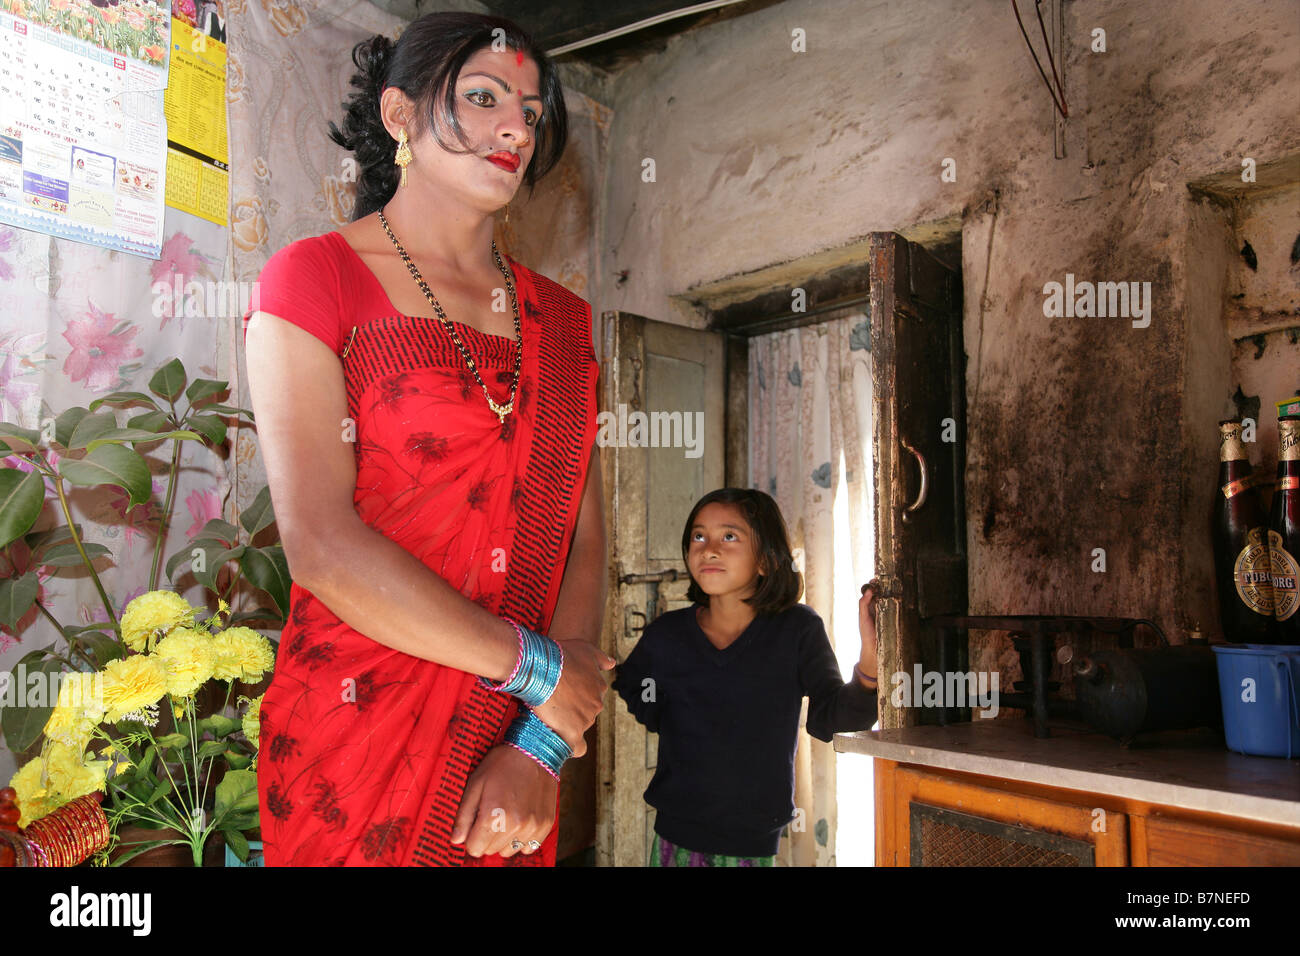 indian ladyboy Ladyboy Garema getting a strange look from a small girl - Stock Image